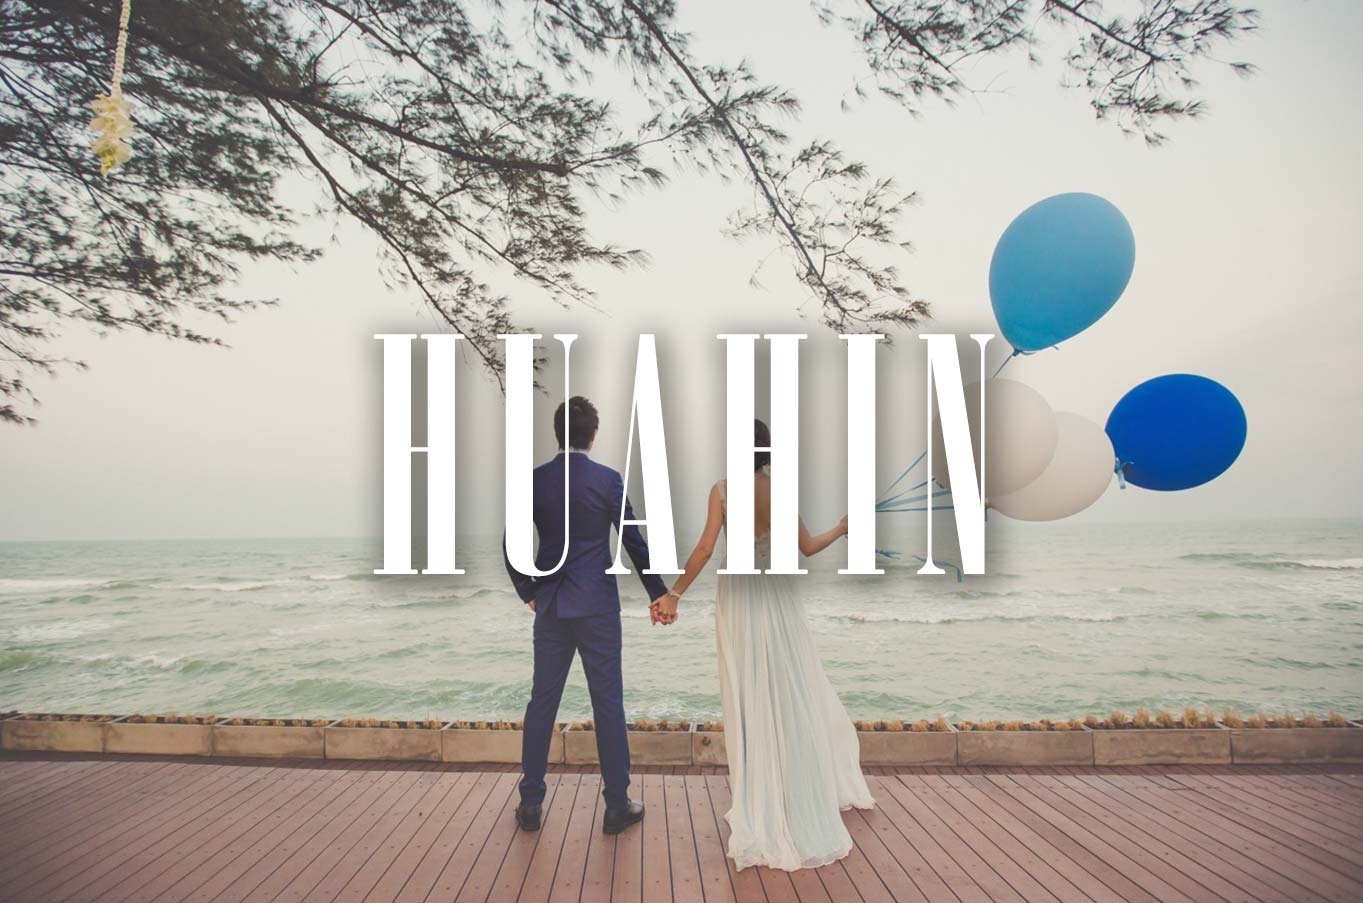 destination-huahin-wedding-photographer-narzstudio